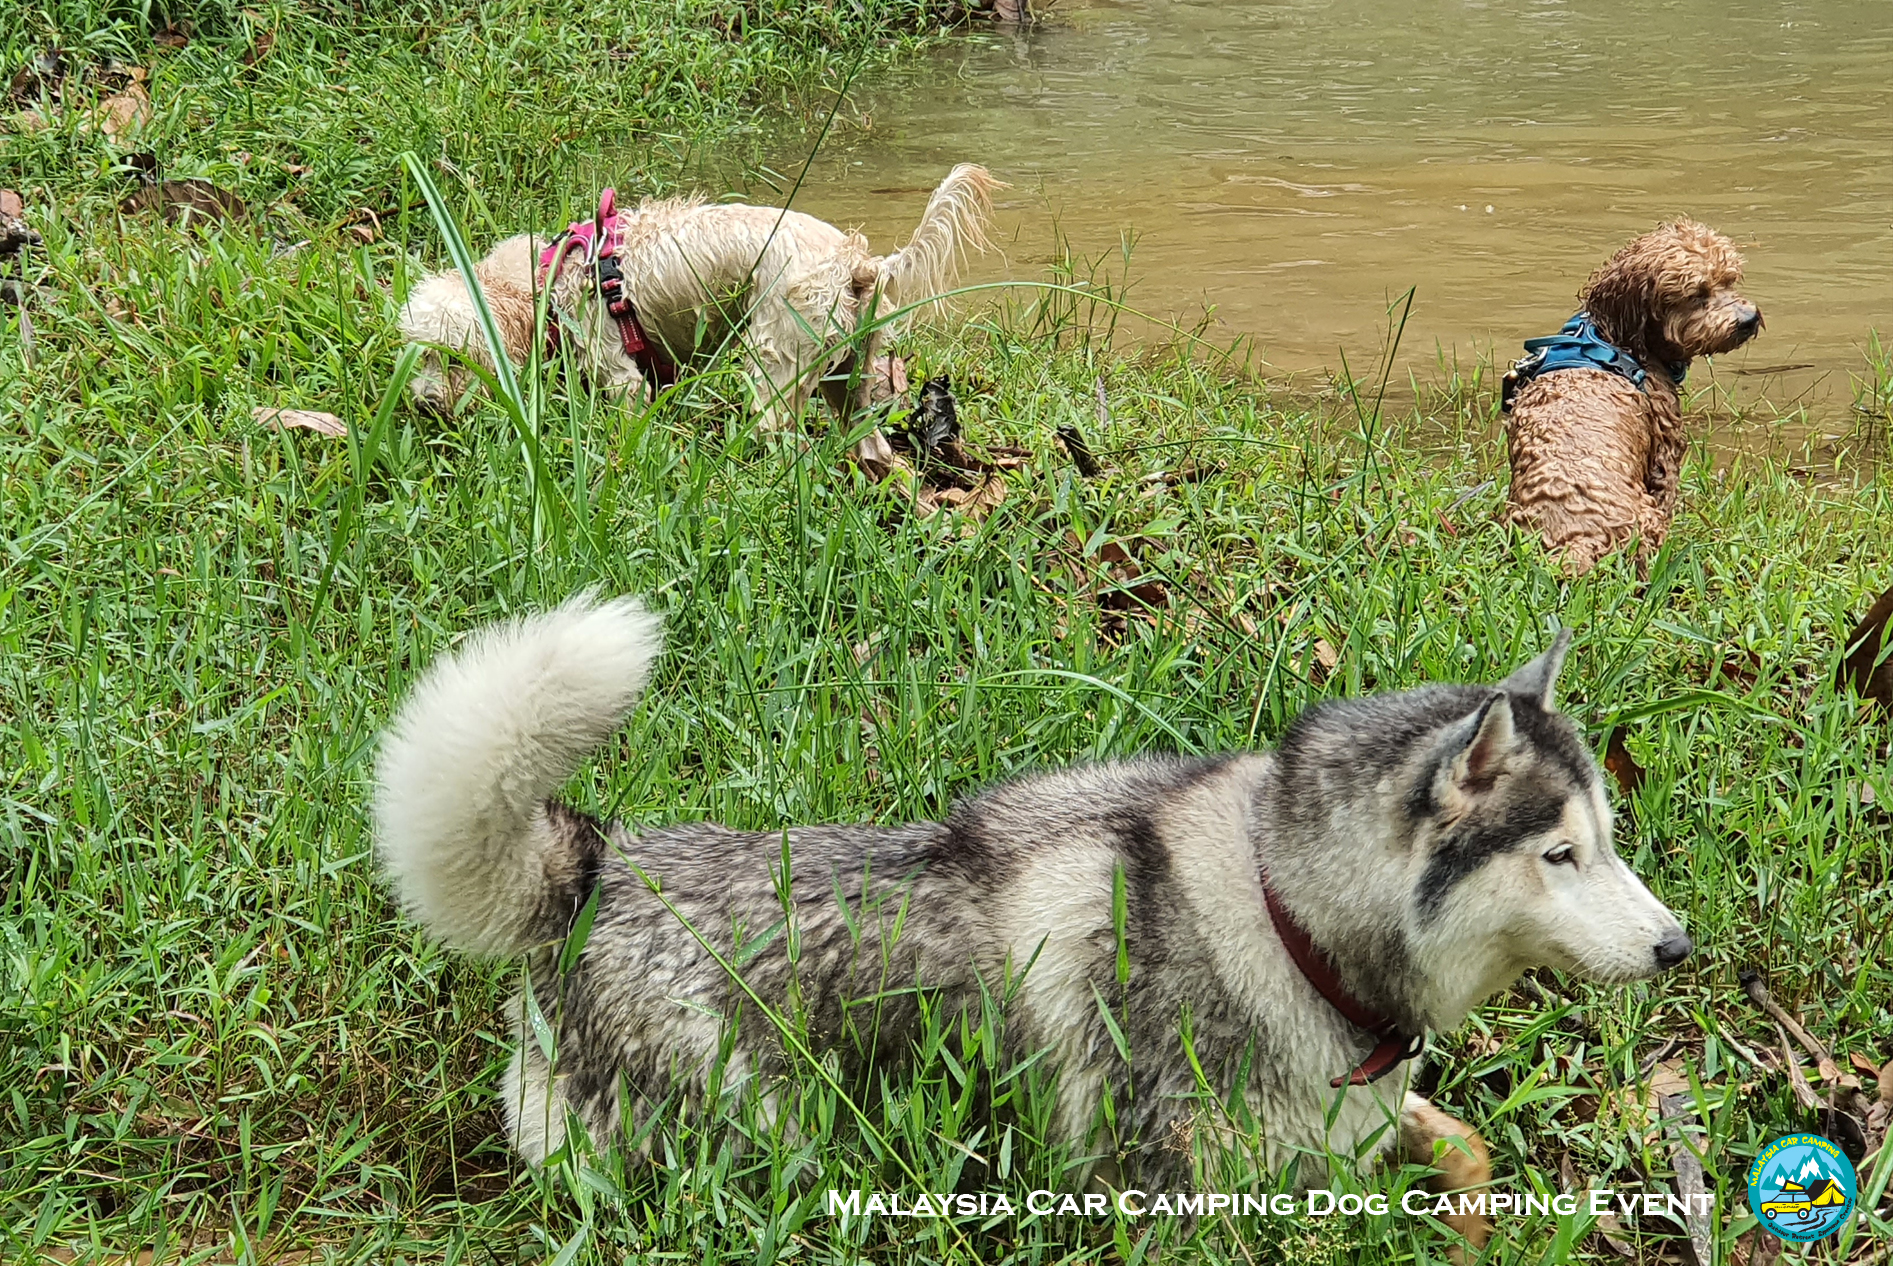 hiking_with_dog_malaysia_dog_camping_event_selangor_camping_site_malaysia_car_camping_private_event_organizer-4